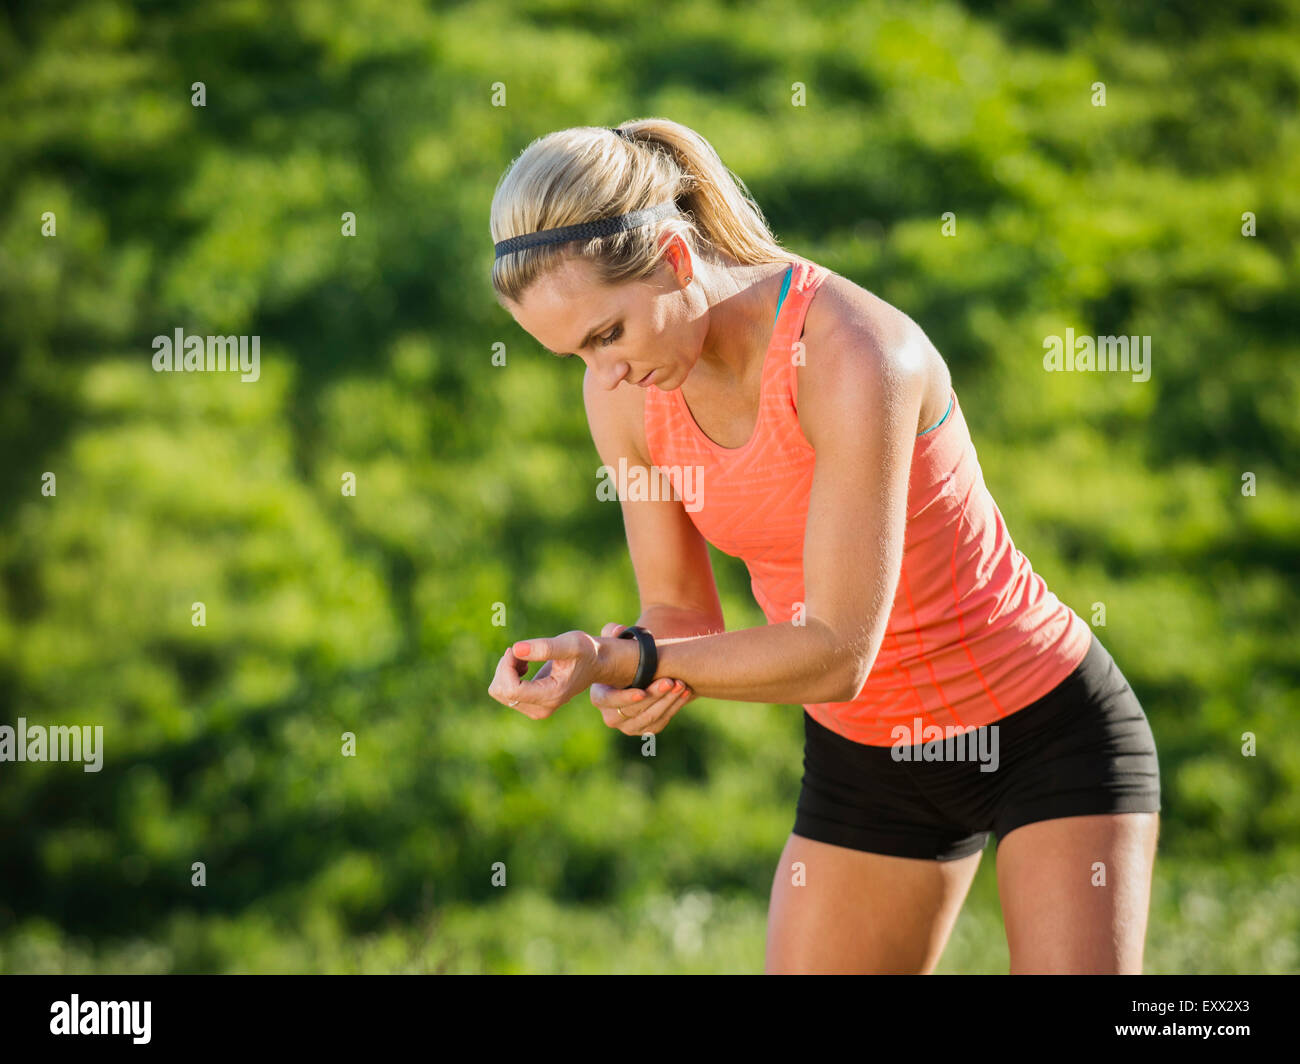 Woman looking at watch - Stock Image